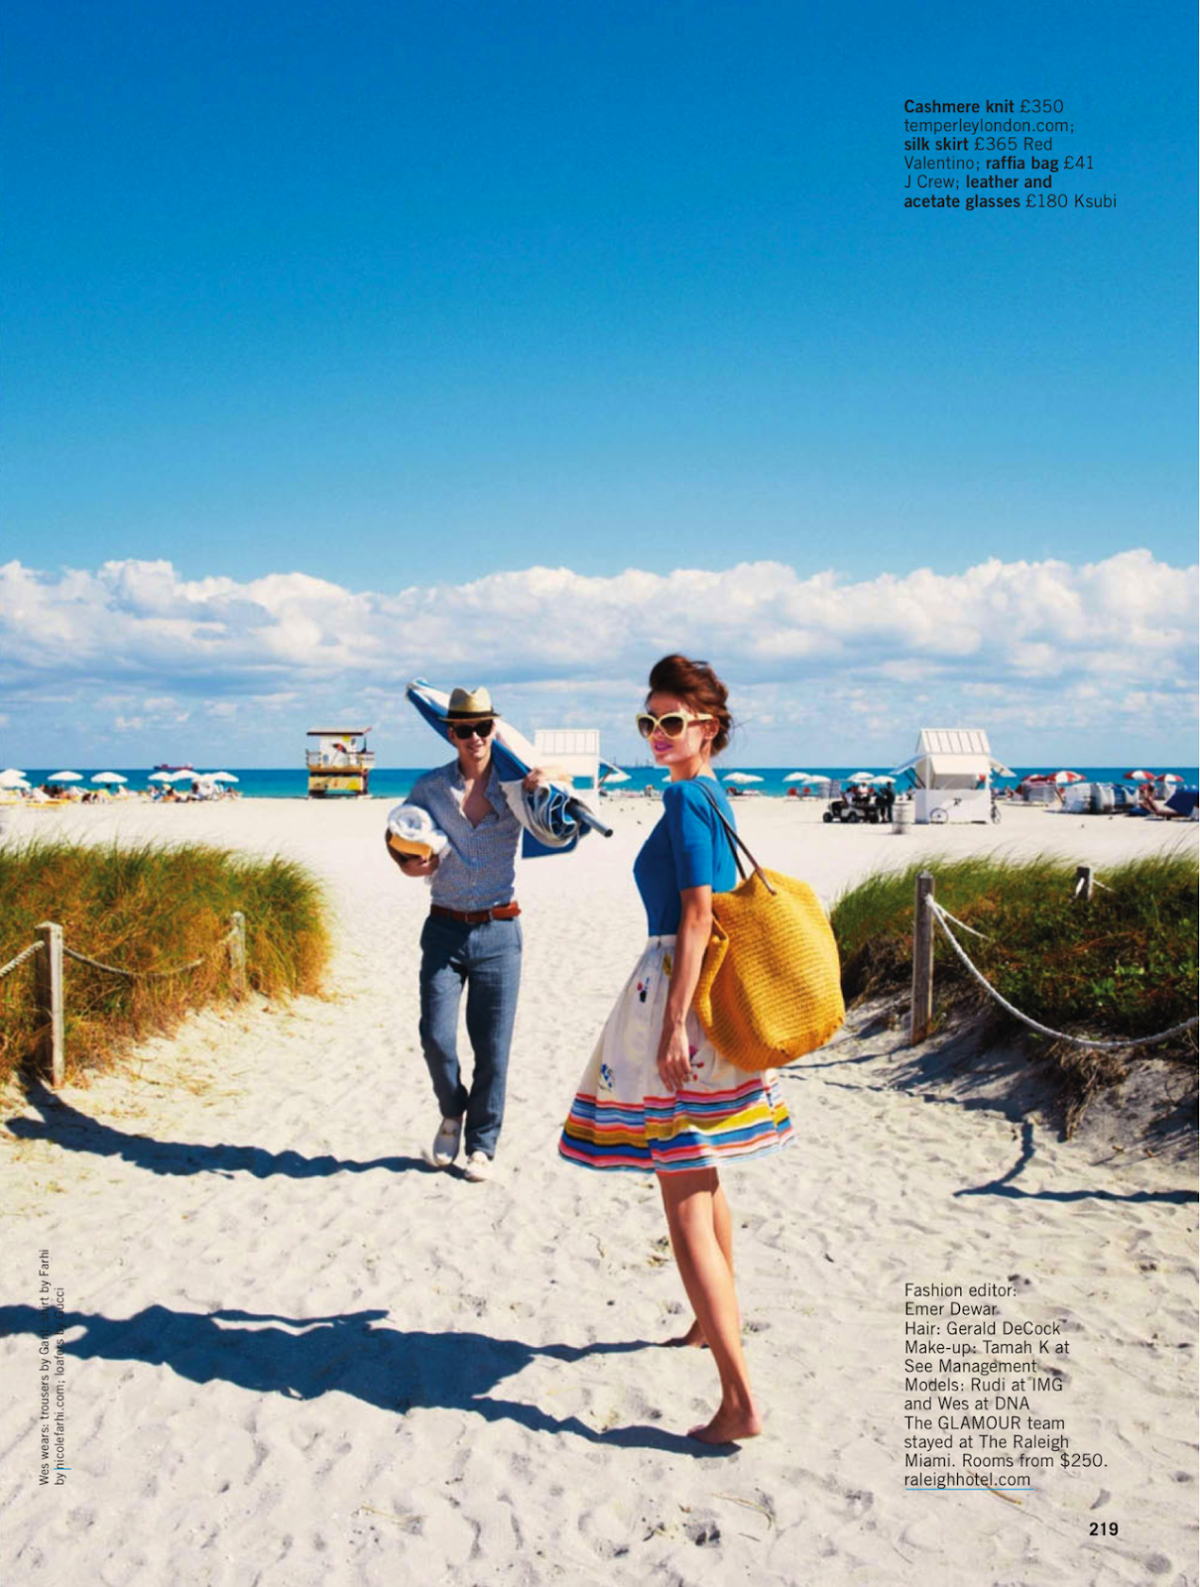 Beach glamour: Rudi Ovchinnikova and Wes by Pamela Hanson for Glamour UK May 2013